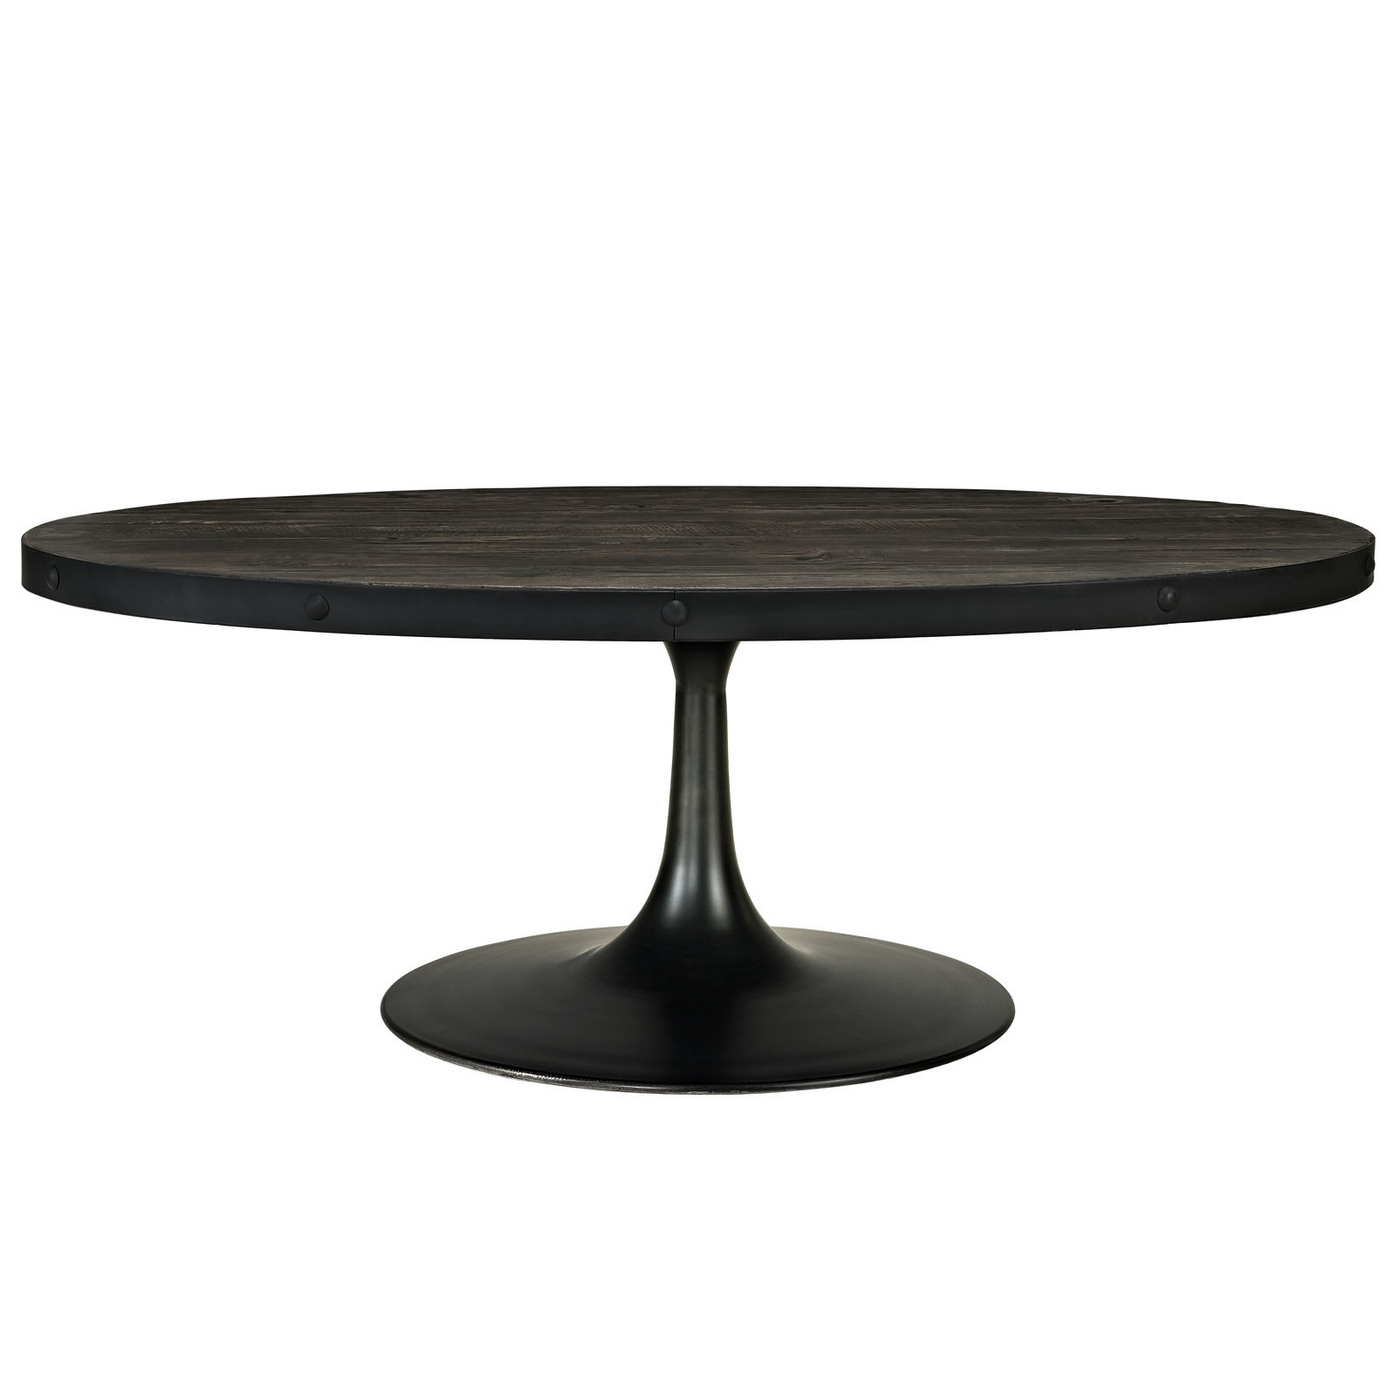 Drive industrial modern round wood top coffee table w cast iron pedestal black Round coffee table modern